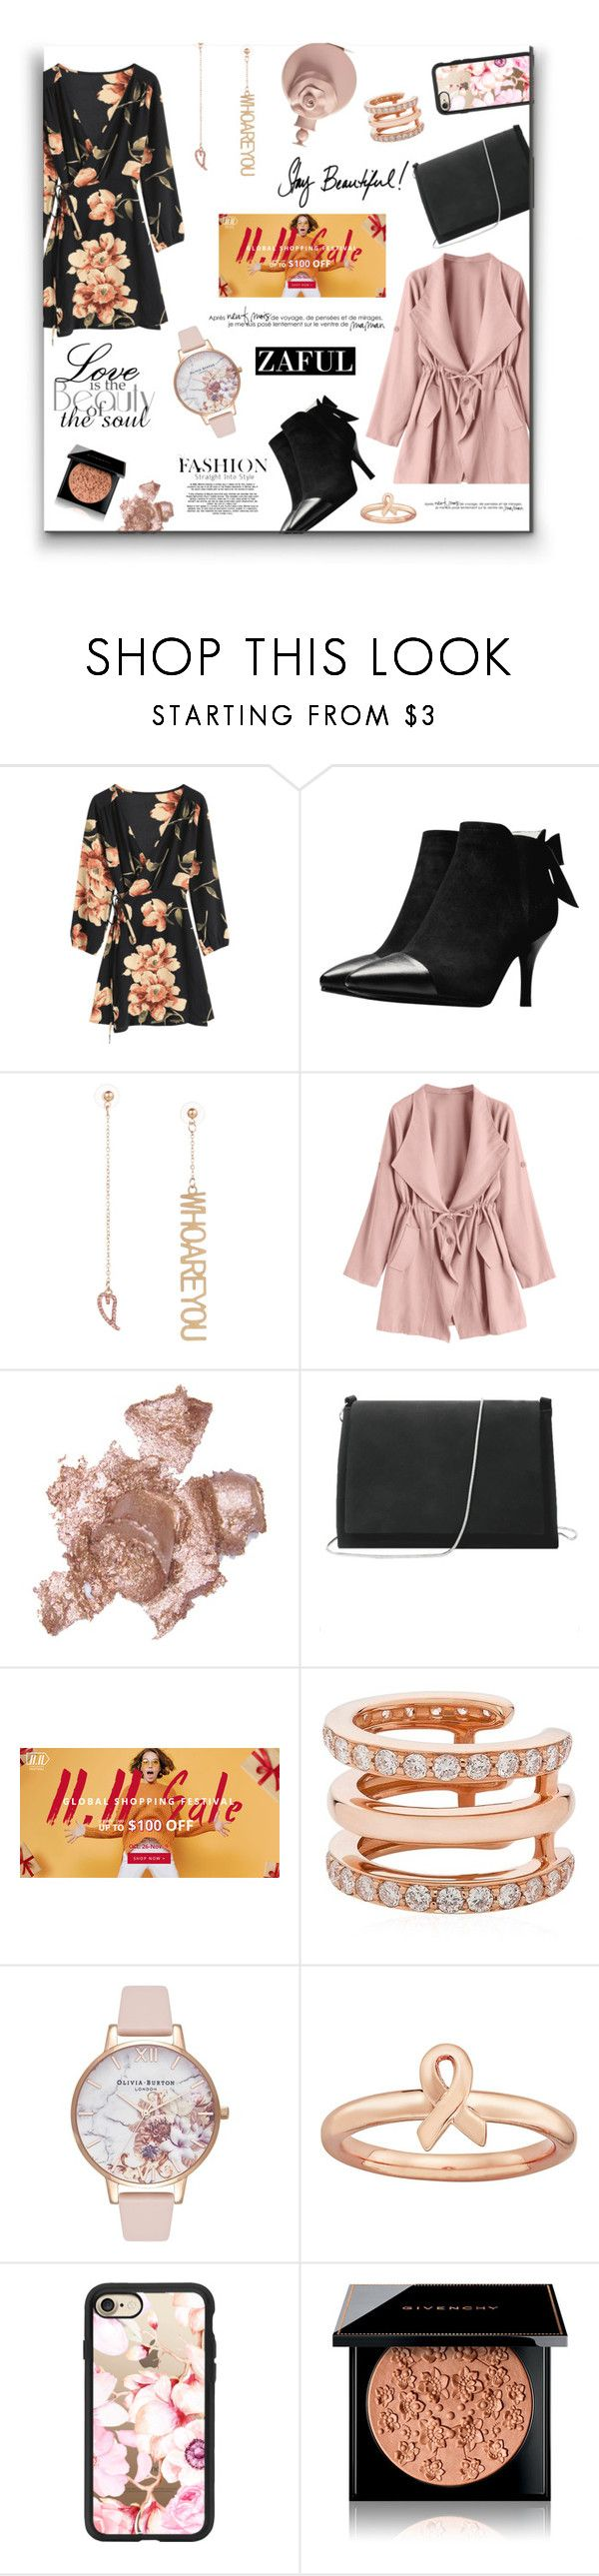 """11/11 Zaful Sale - Floral trend"" by jaystilo ❤ liked on Polyvore featuring By Terry, Sarah Noor, Olivia Burton, Stacks and Stones, Casetify, Givenchy, Valentino, floral, Pink and black"